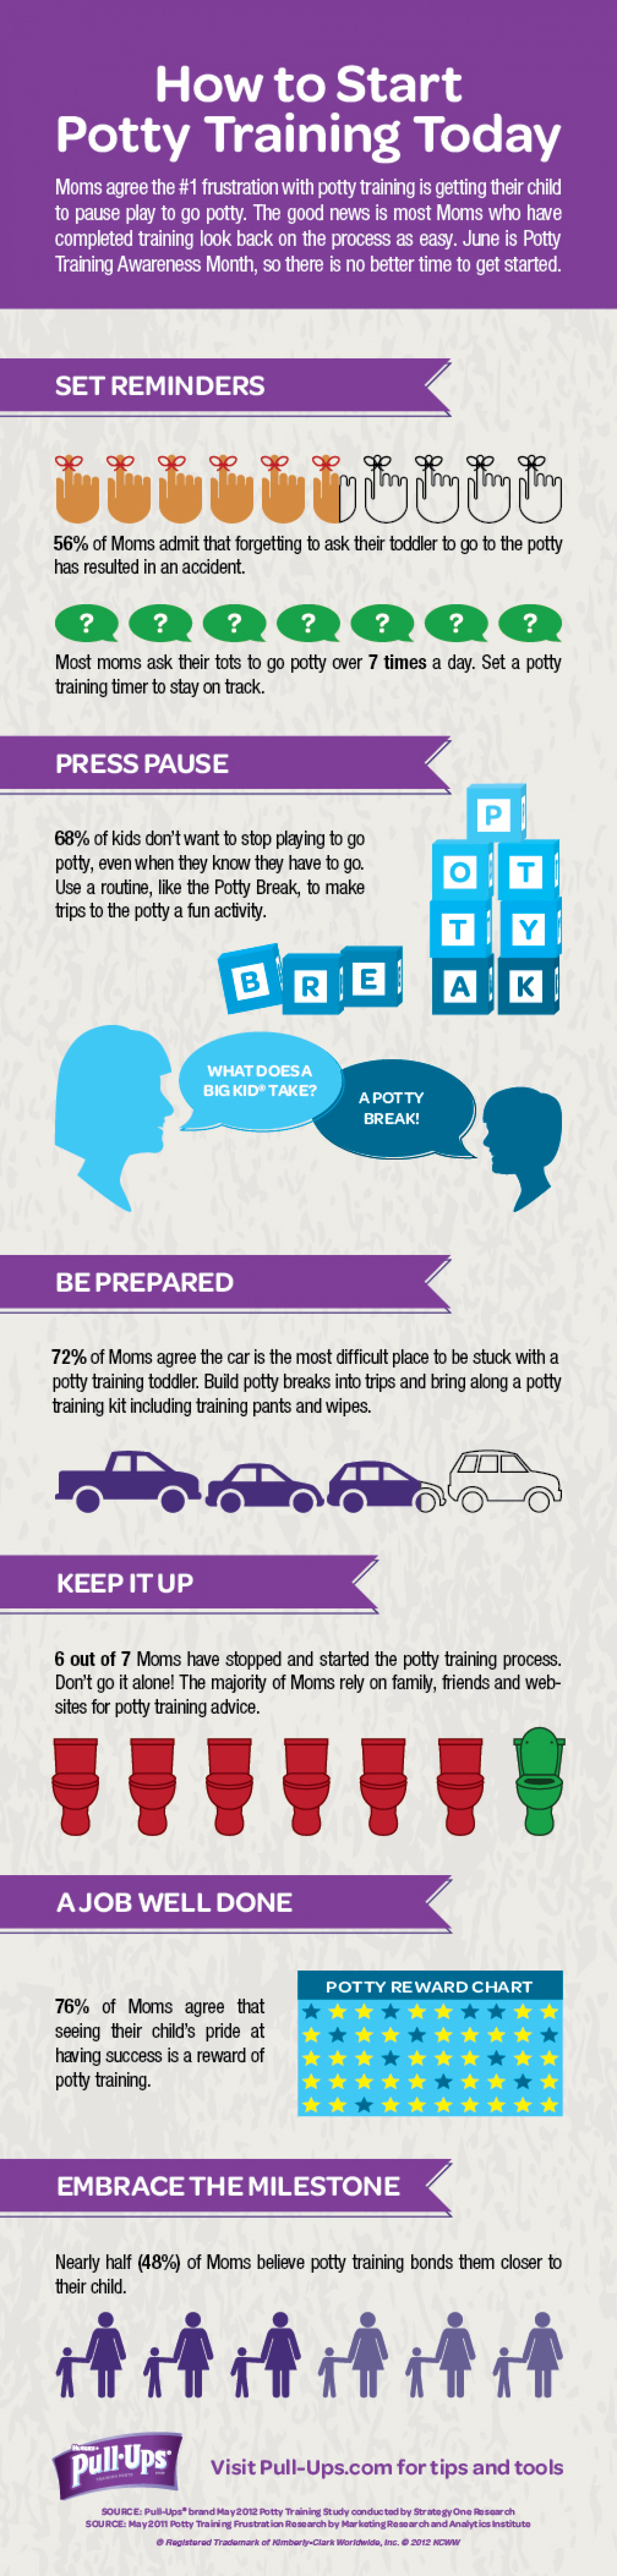 Start Potty Training Today  Infographic